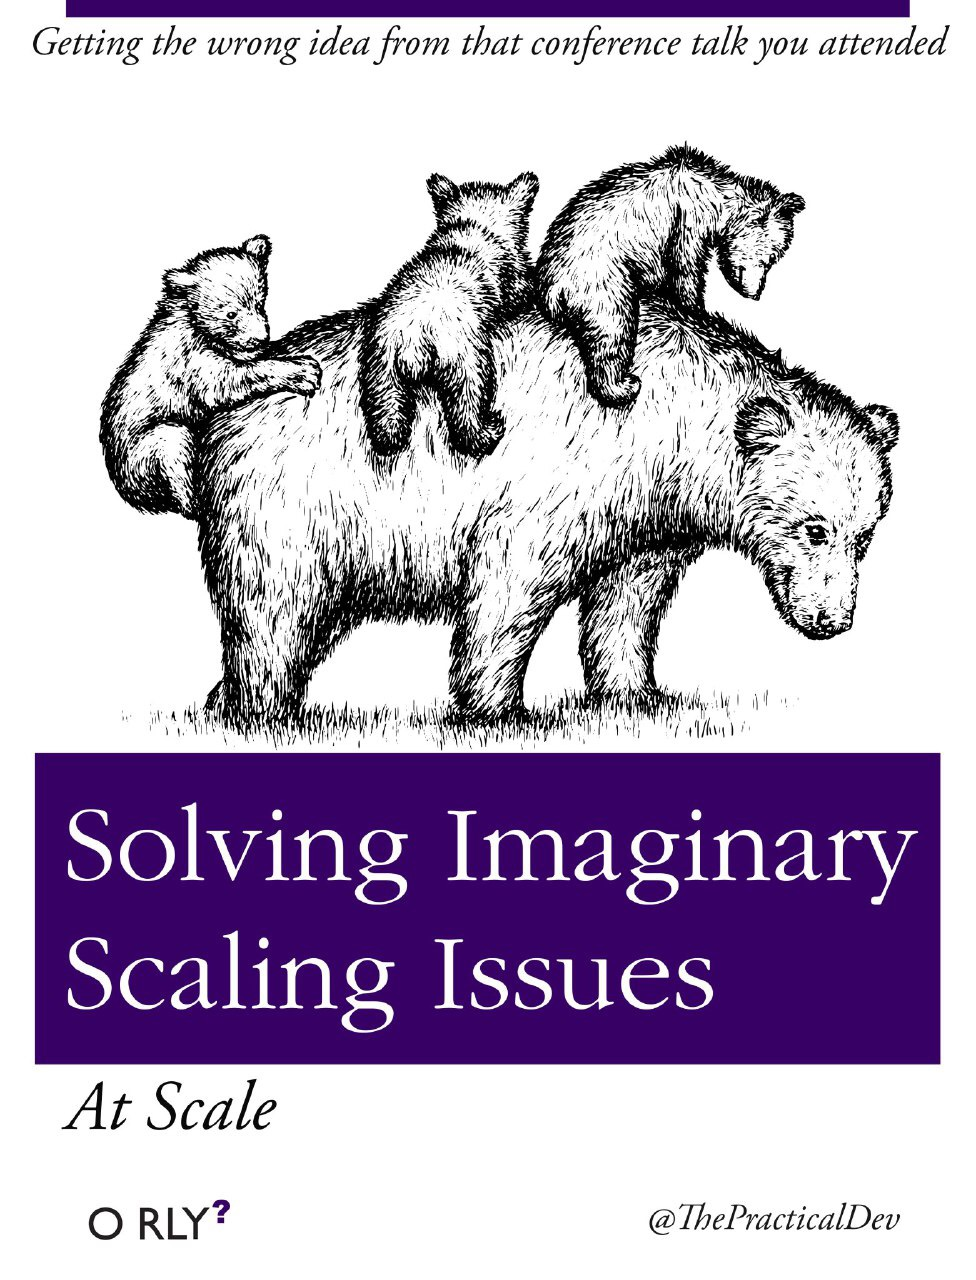 Solving Imaginary Scaling Issues At Scale book cover